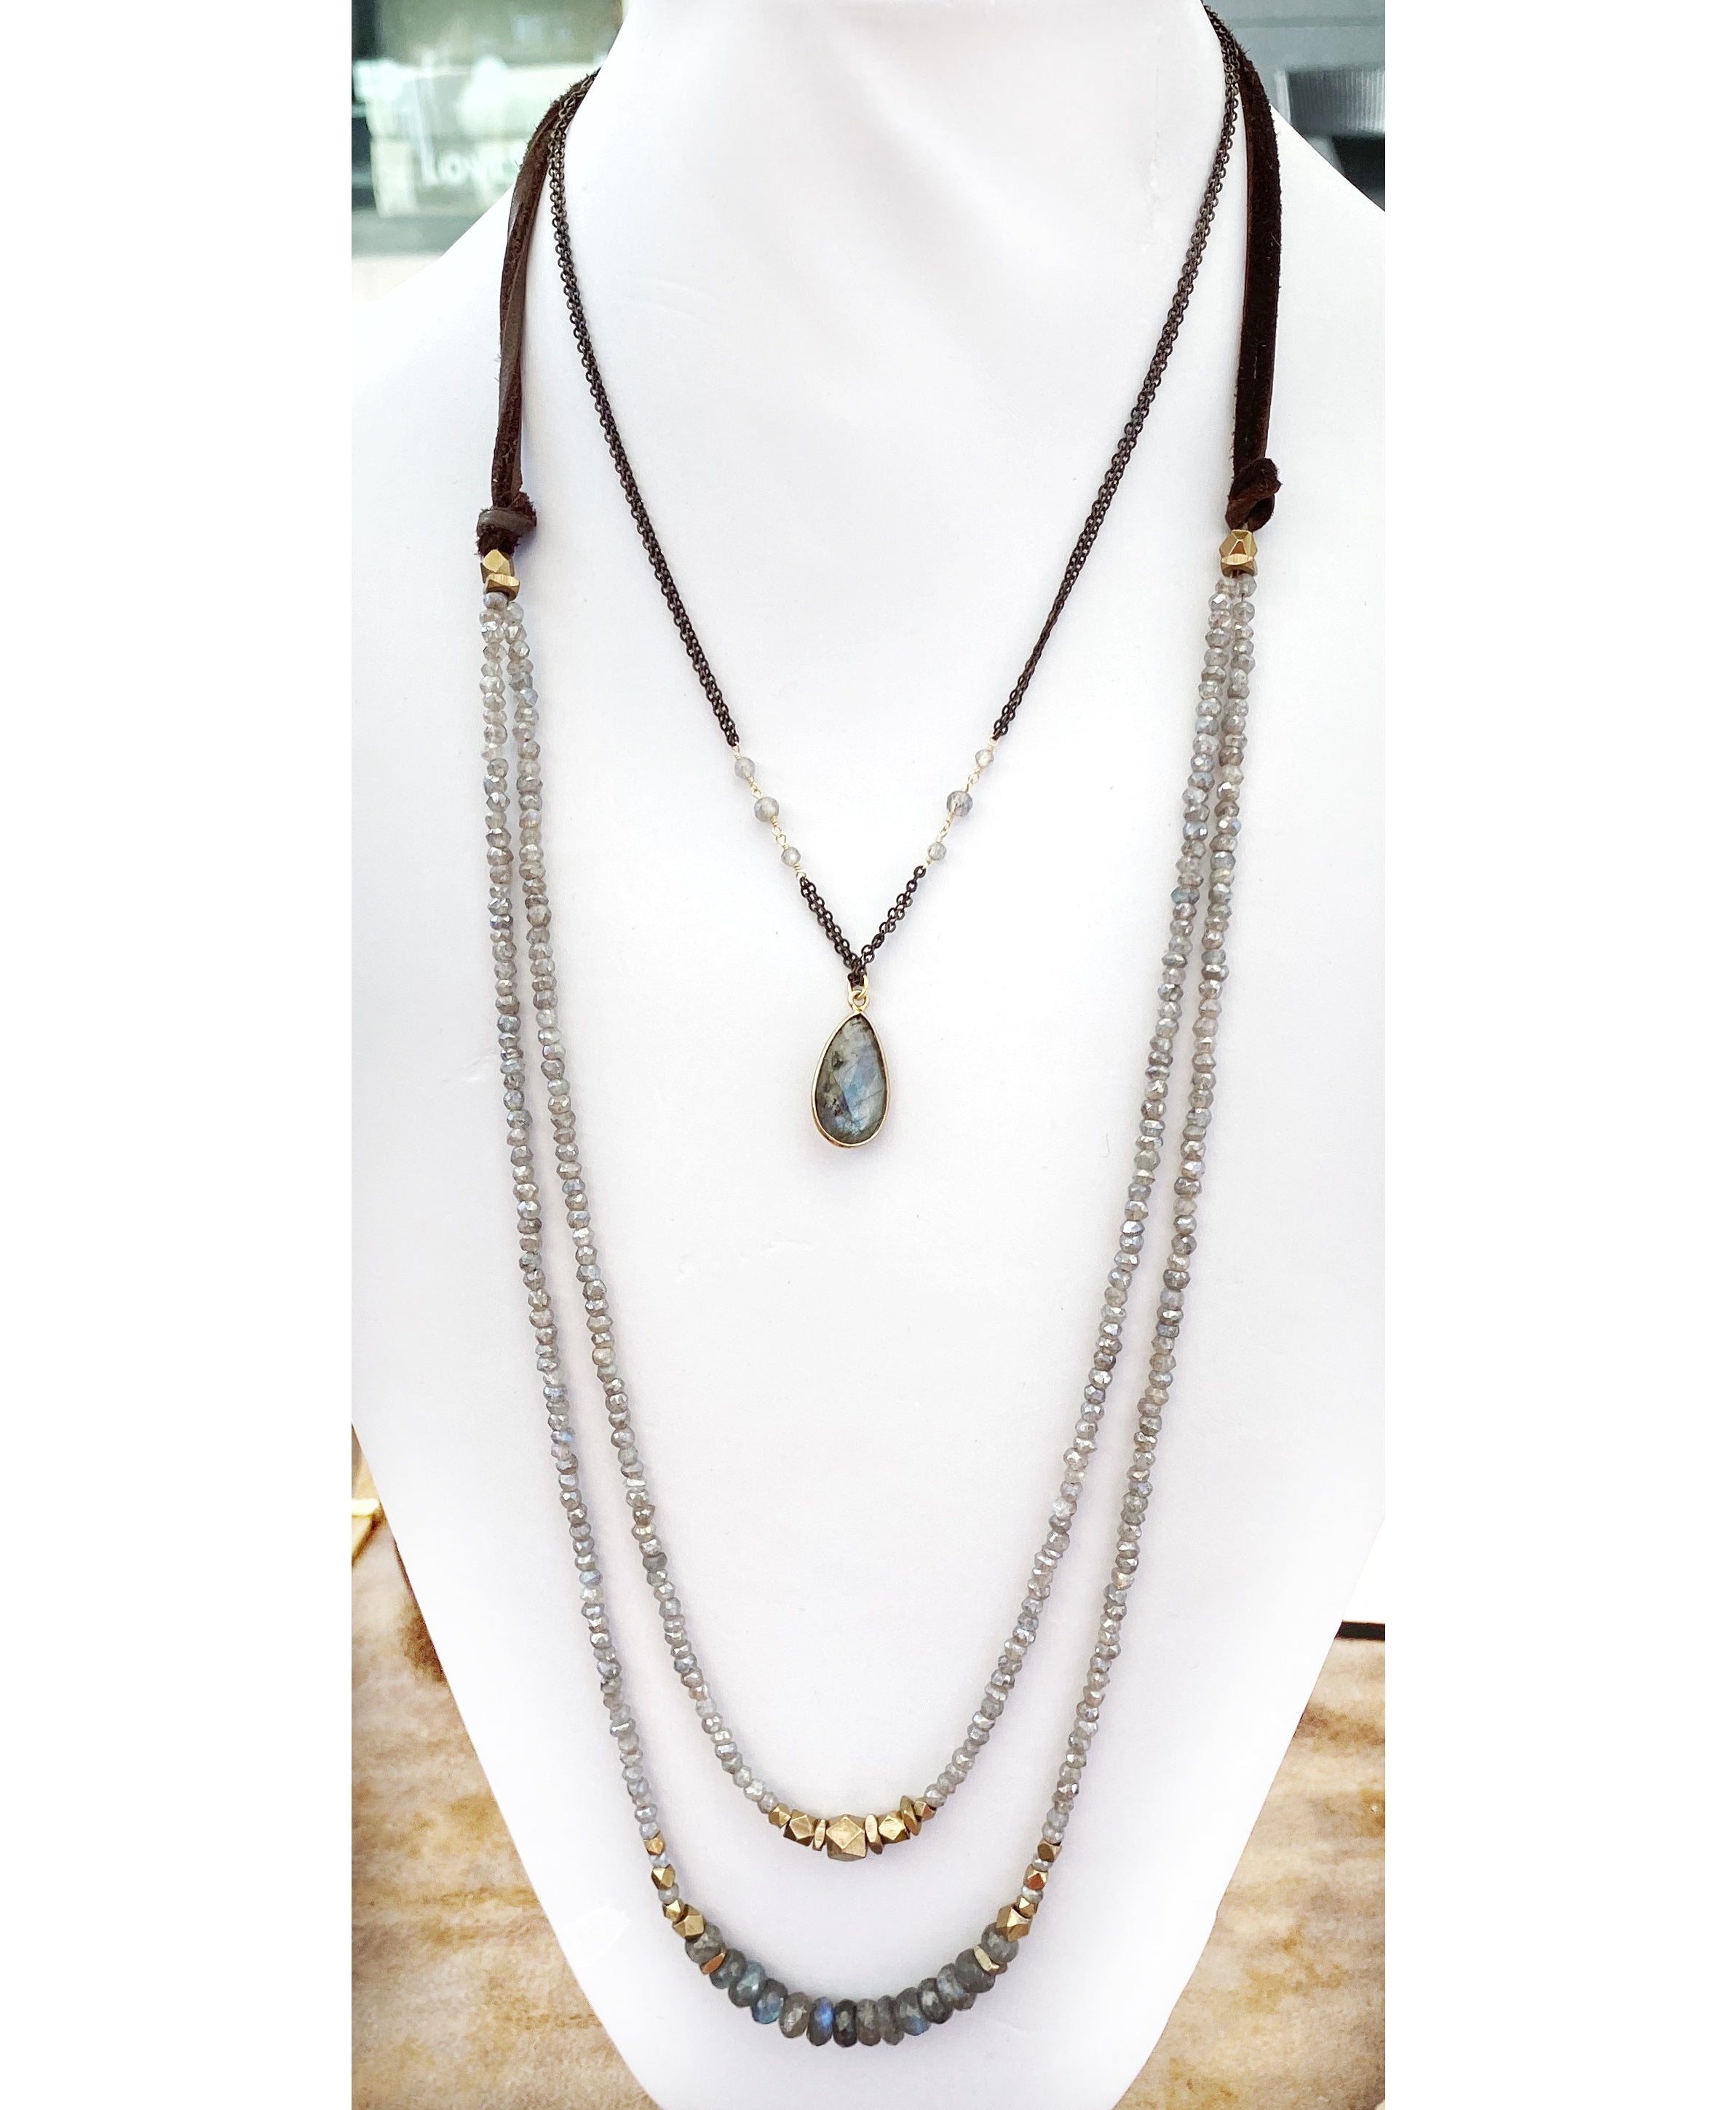 The Beautiful Necklace, Labradorite